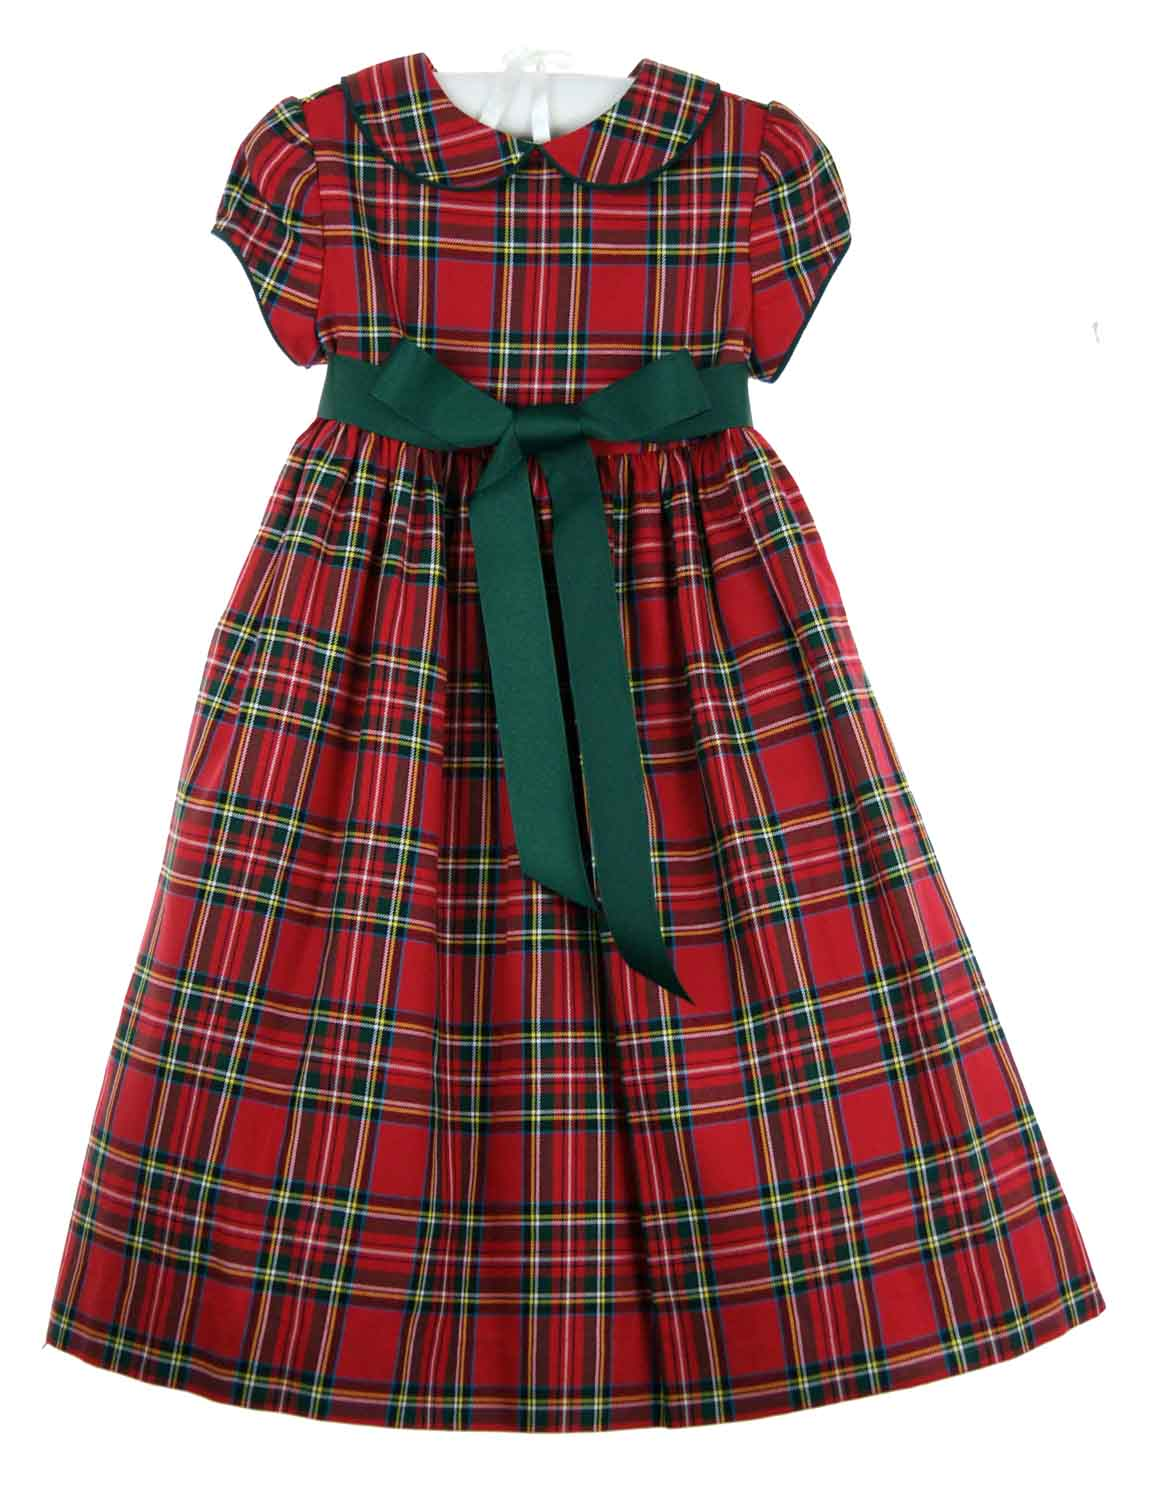 Bailey Boys Red Tartan Plaid Dressred Tartan Plaid Dress